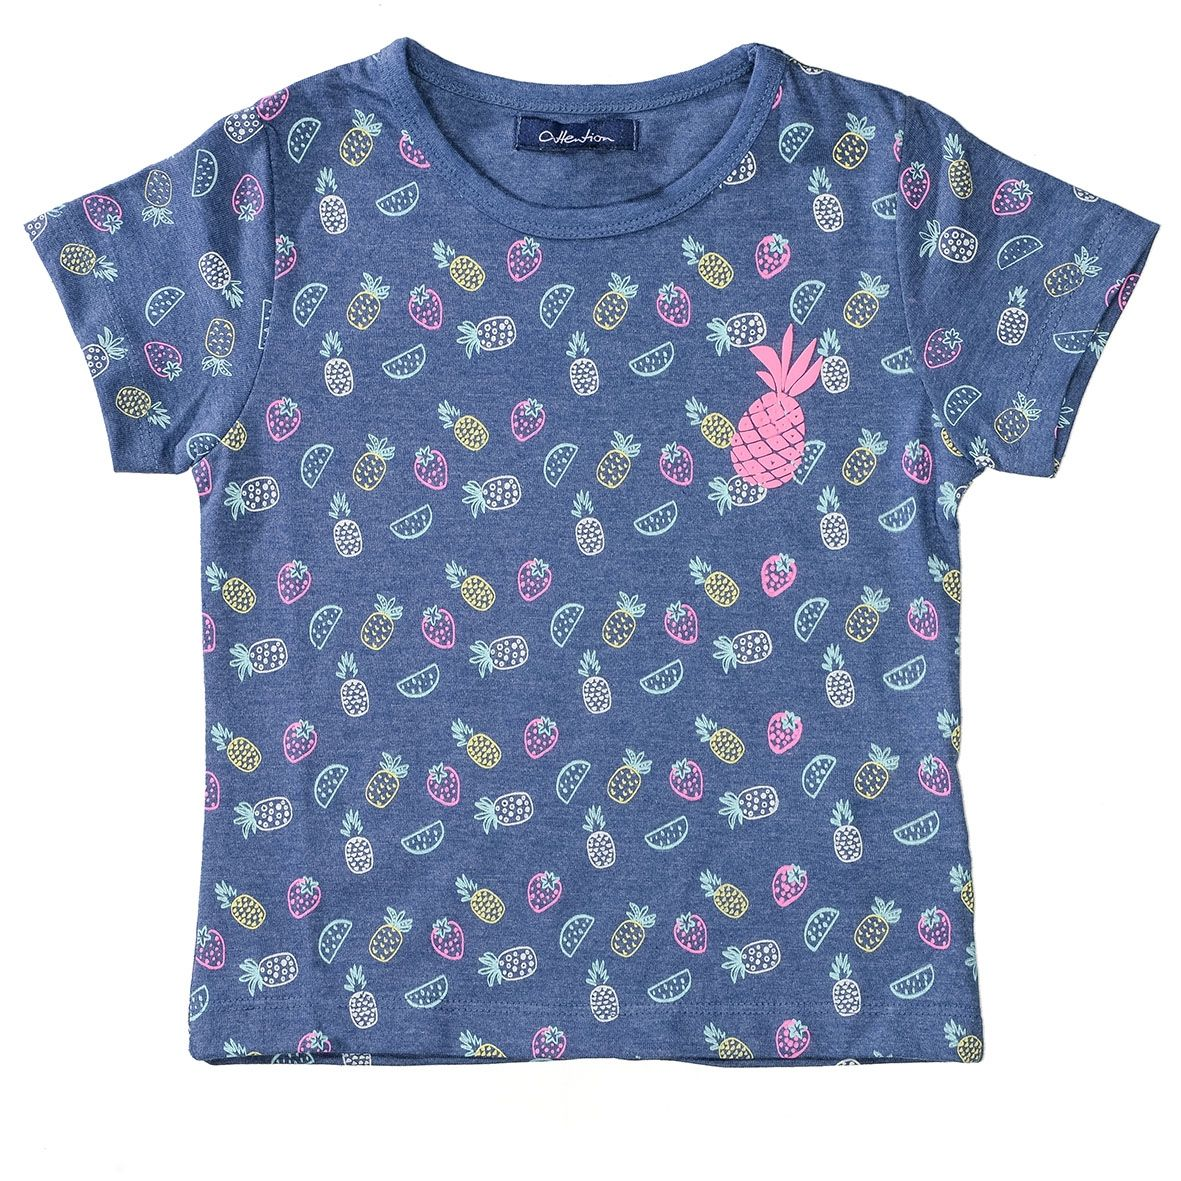 ATTENTION T-Shirt mit Ananas-Applikation - Pineapple-AOP